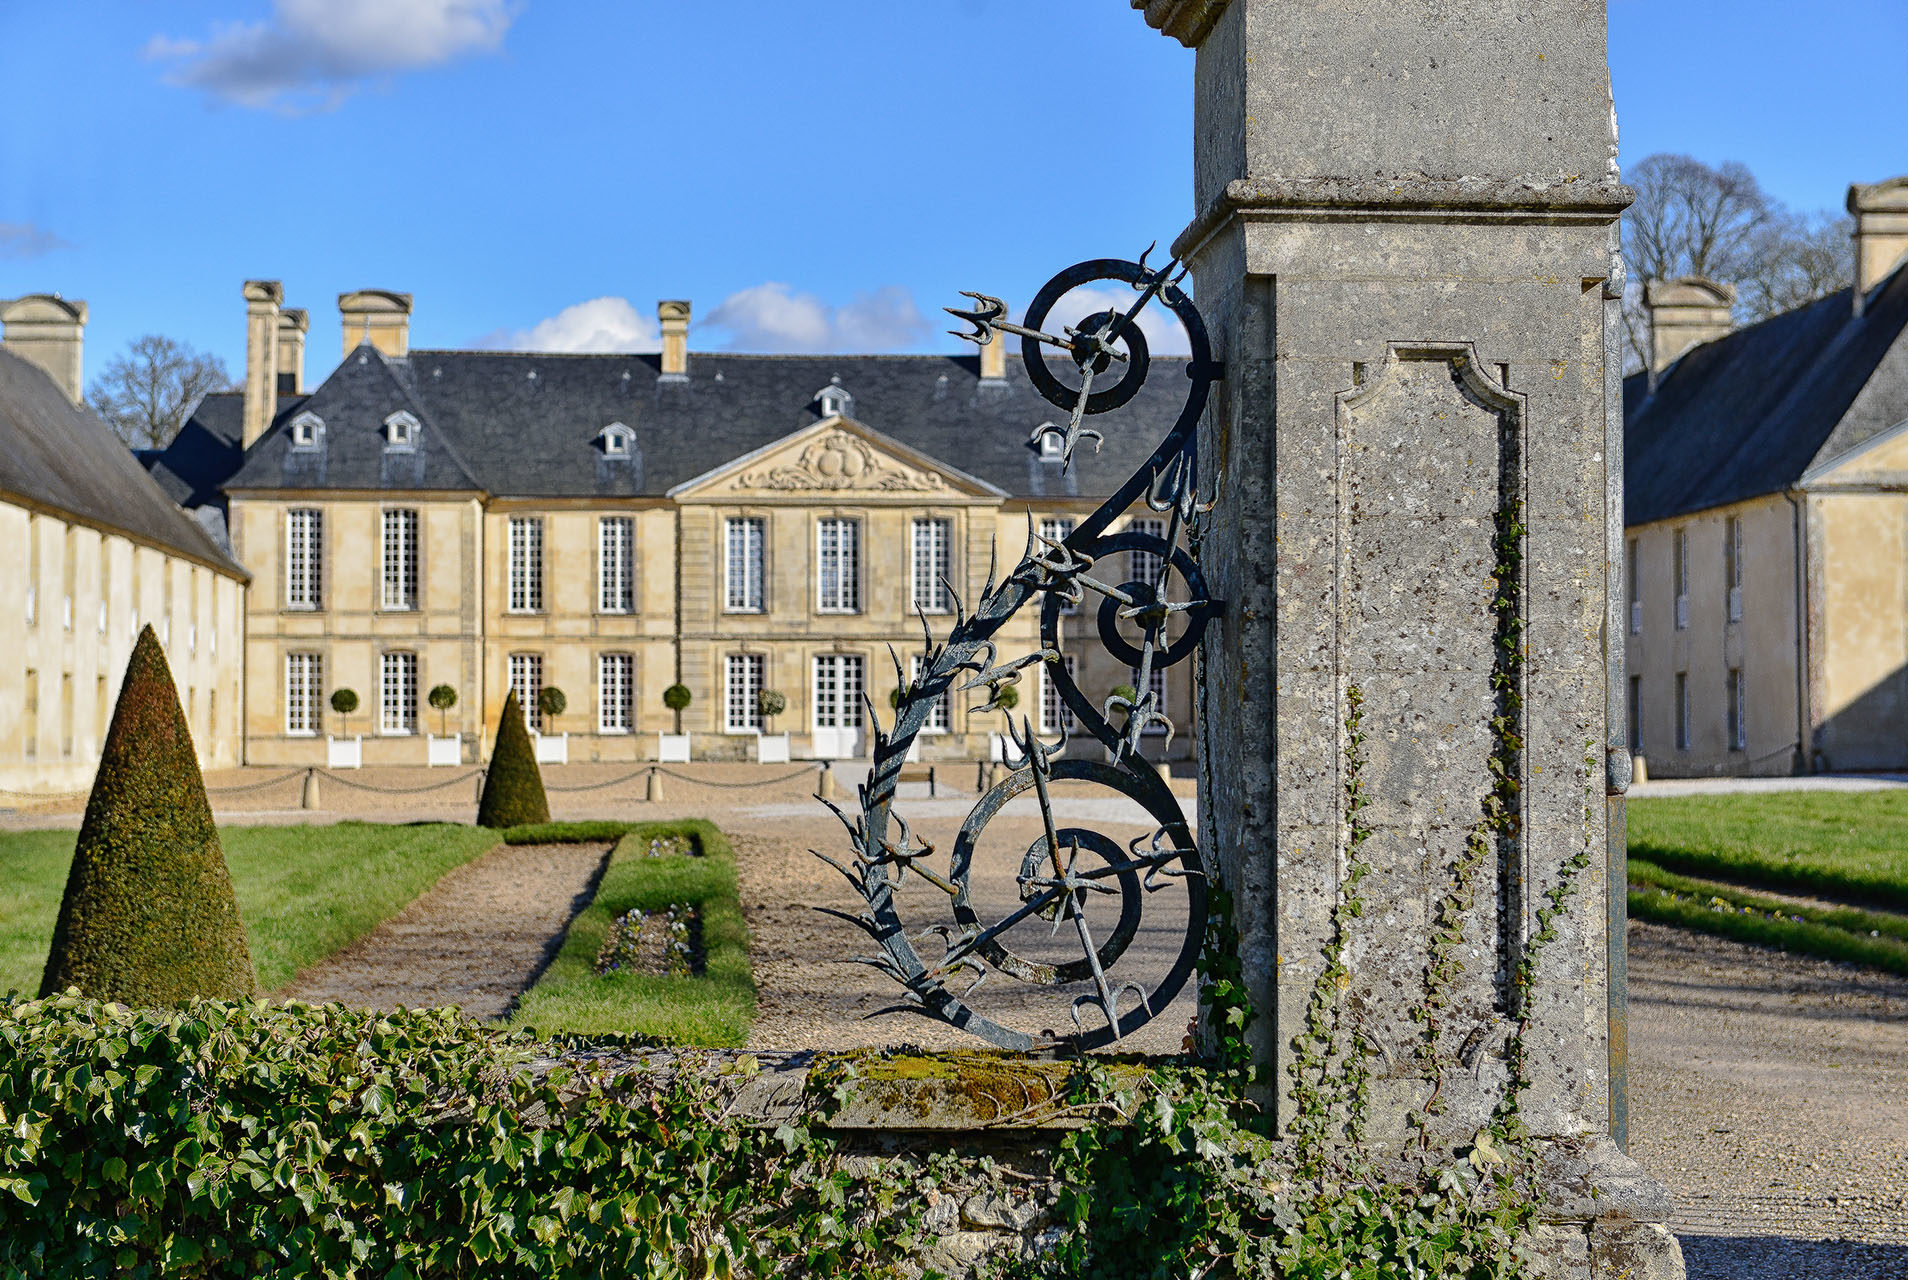 photographe-ile-de-france-corporate-resort-hotellerie-chateau-d-audrieu